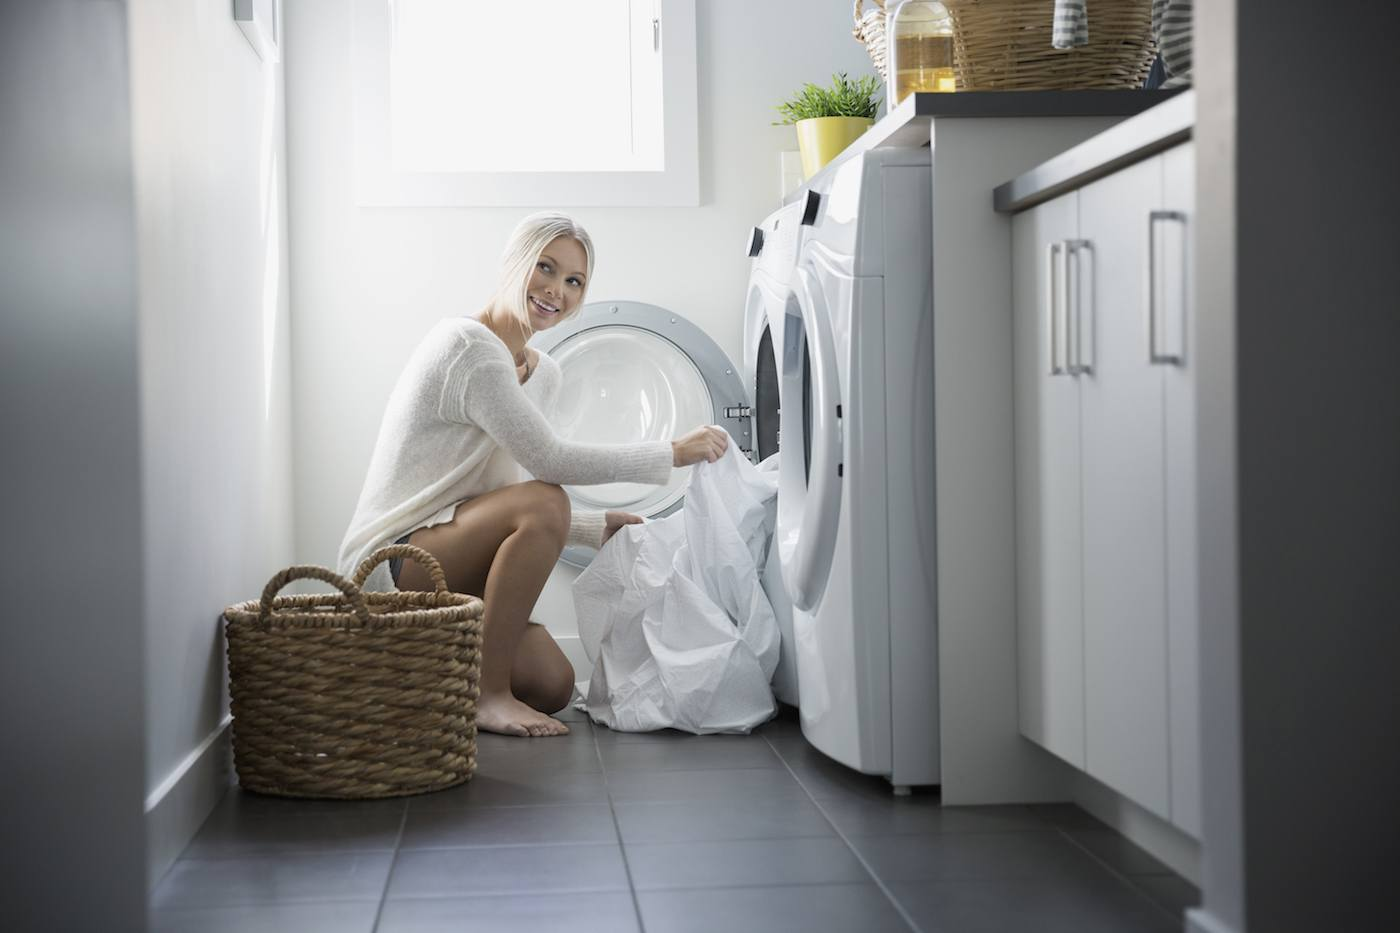 Thumbnail for 9 ultra-clean laundry detergents for people with sensitive skin